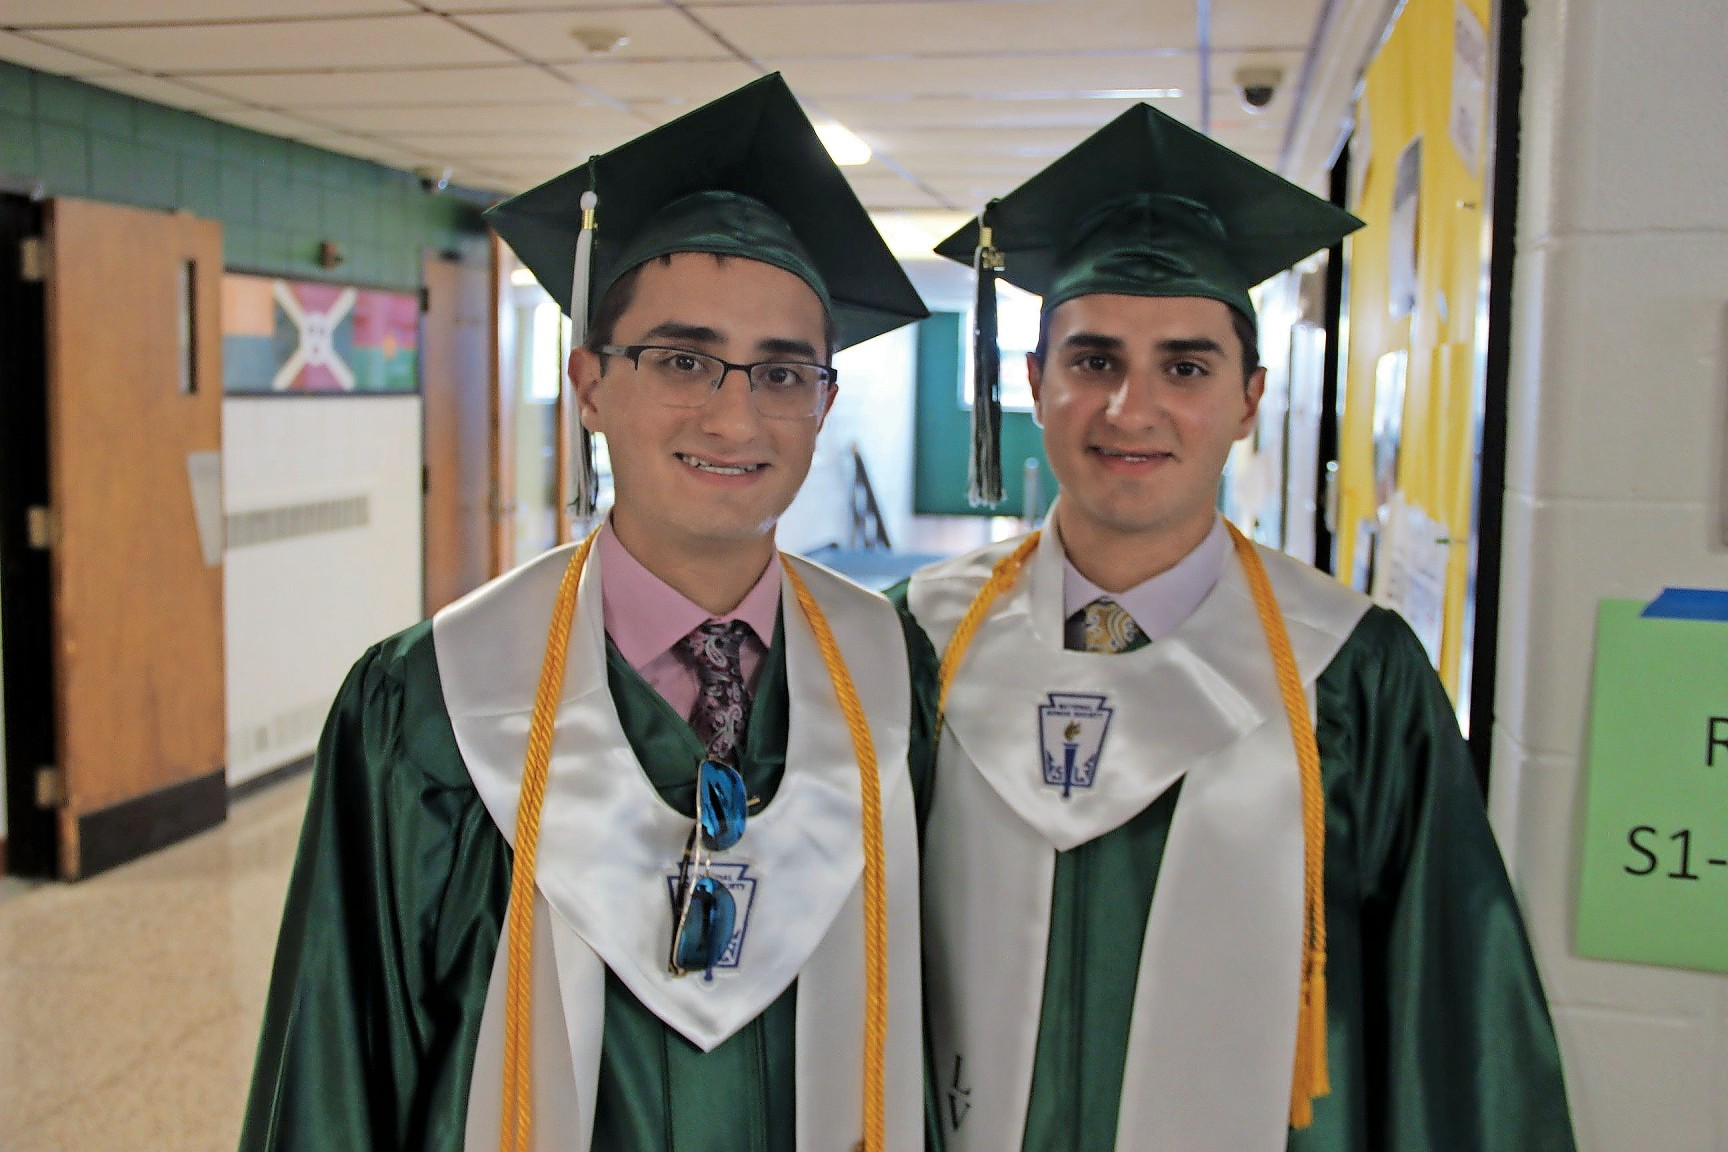 Twins Nicholas, and Matthew Rizzo, the Valedictorian and Salutatorian, of the class of 2017.